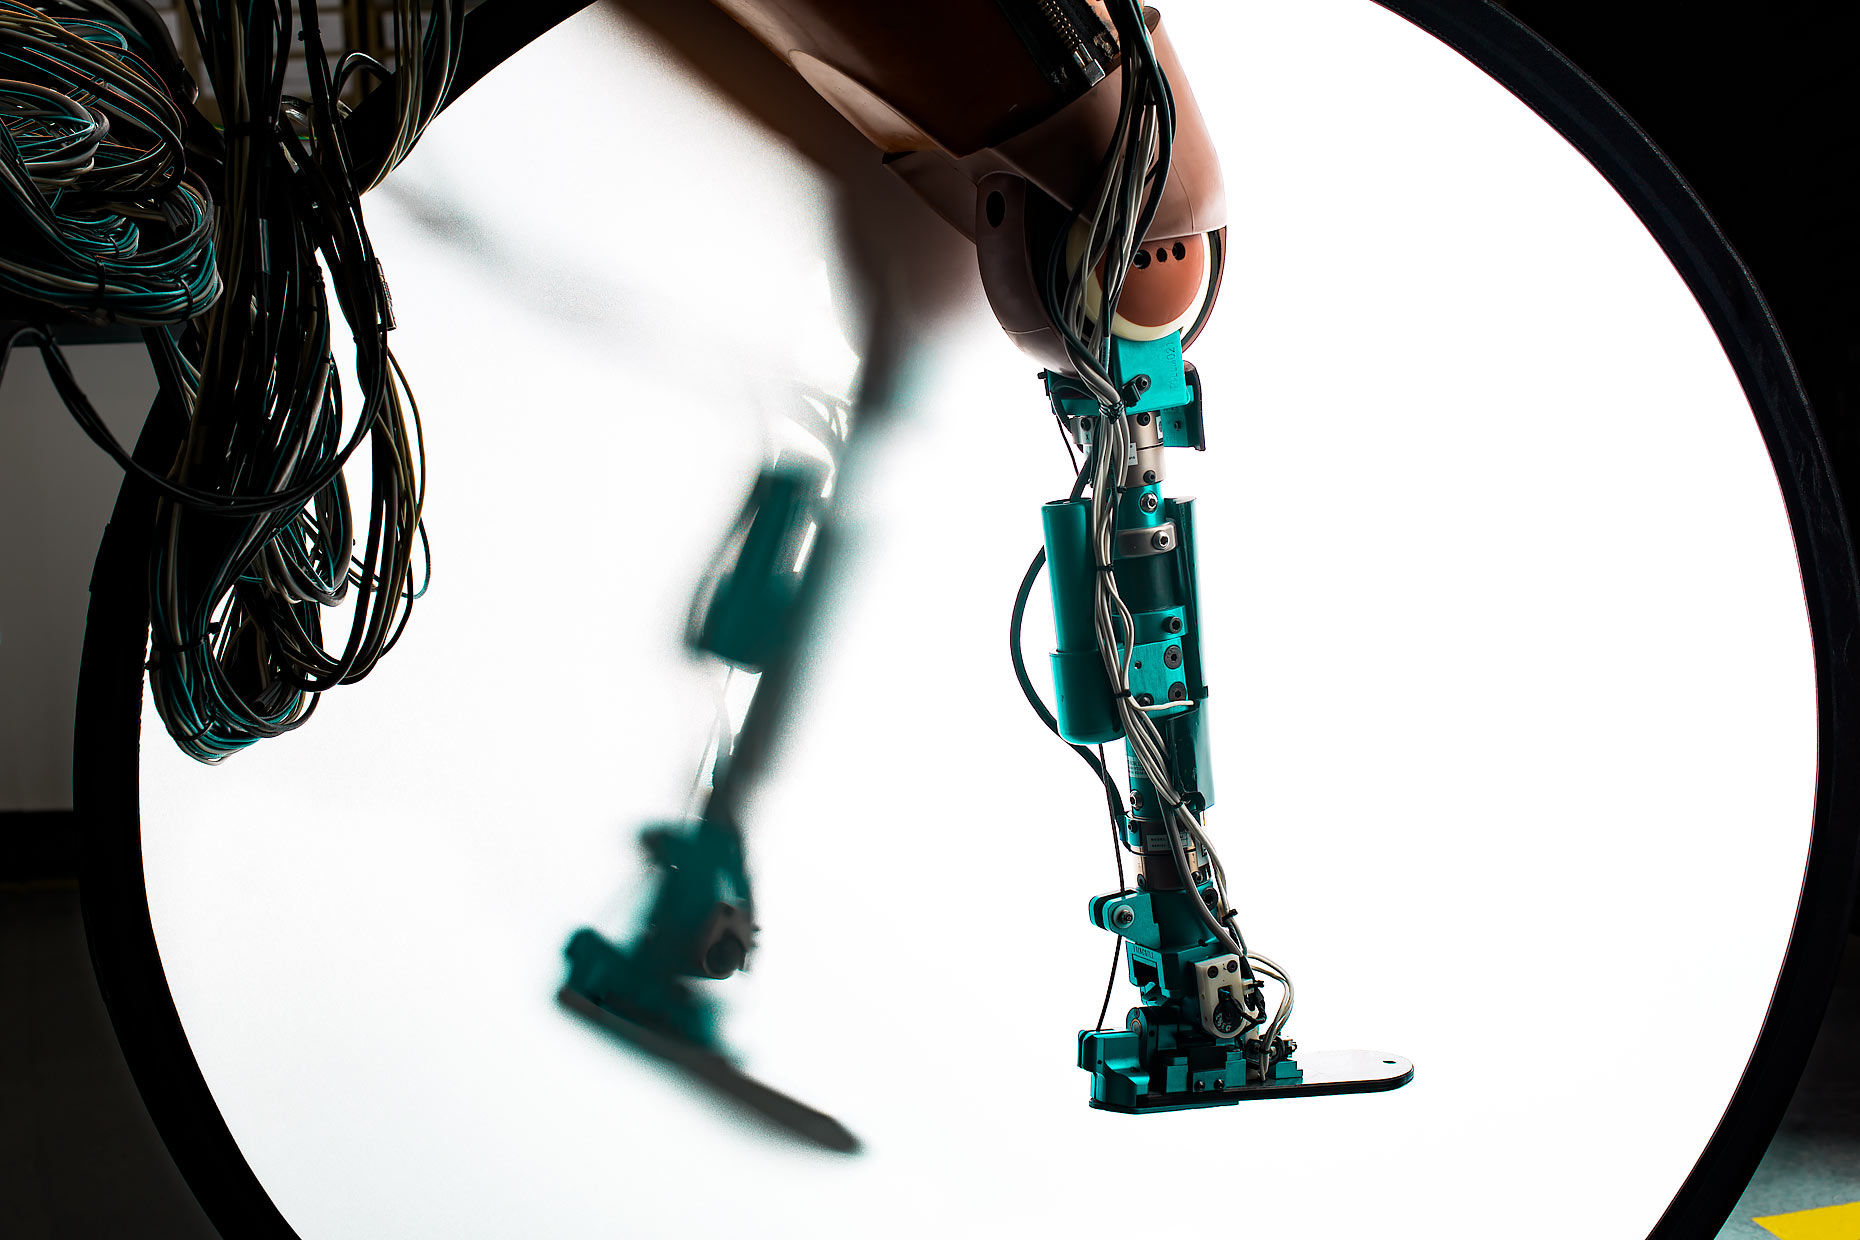 Testing robotic legs in the laboratory | Scott Gable industrial photographer